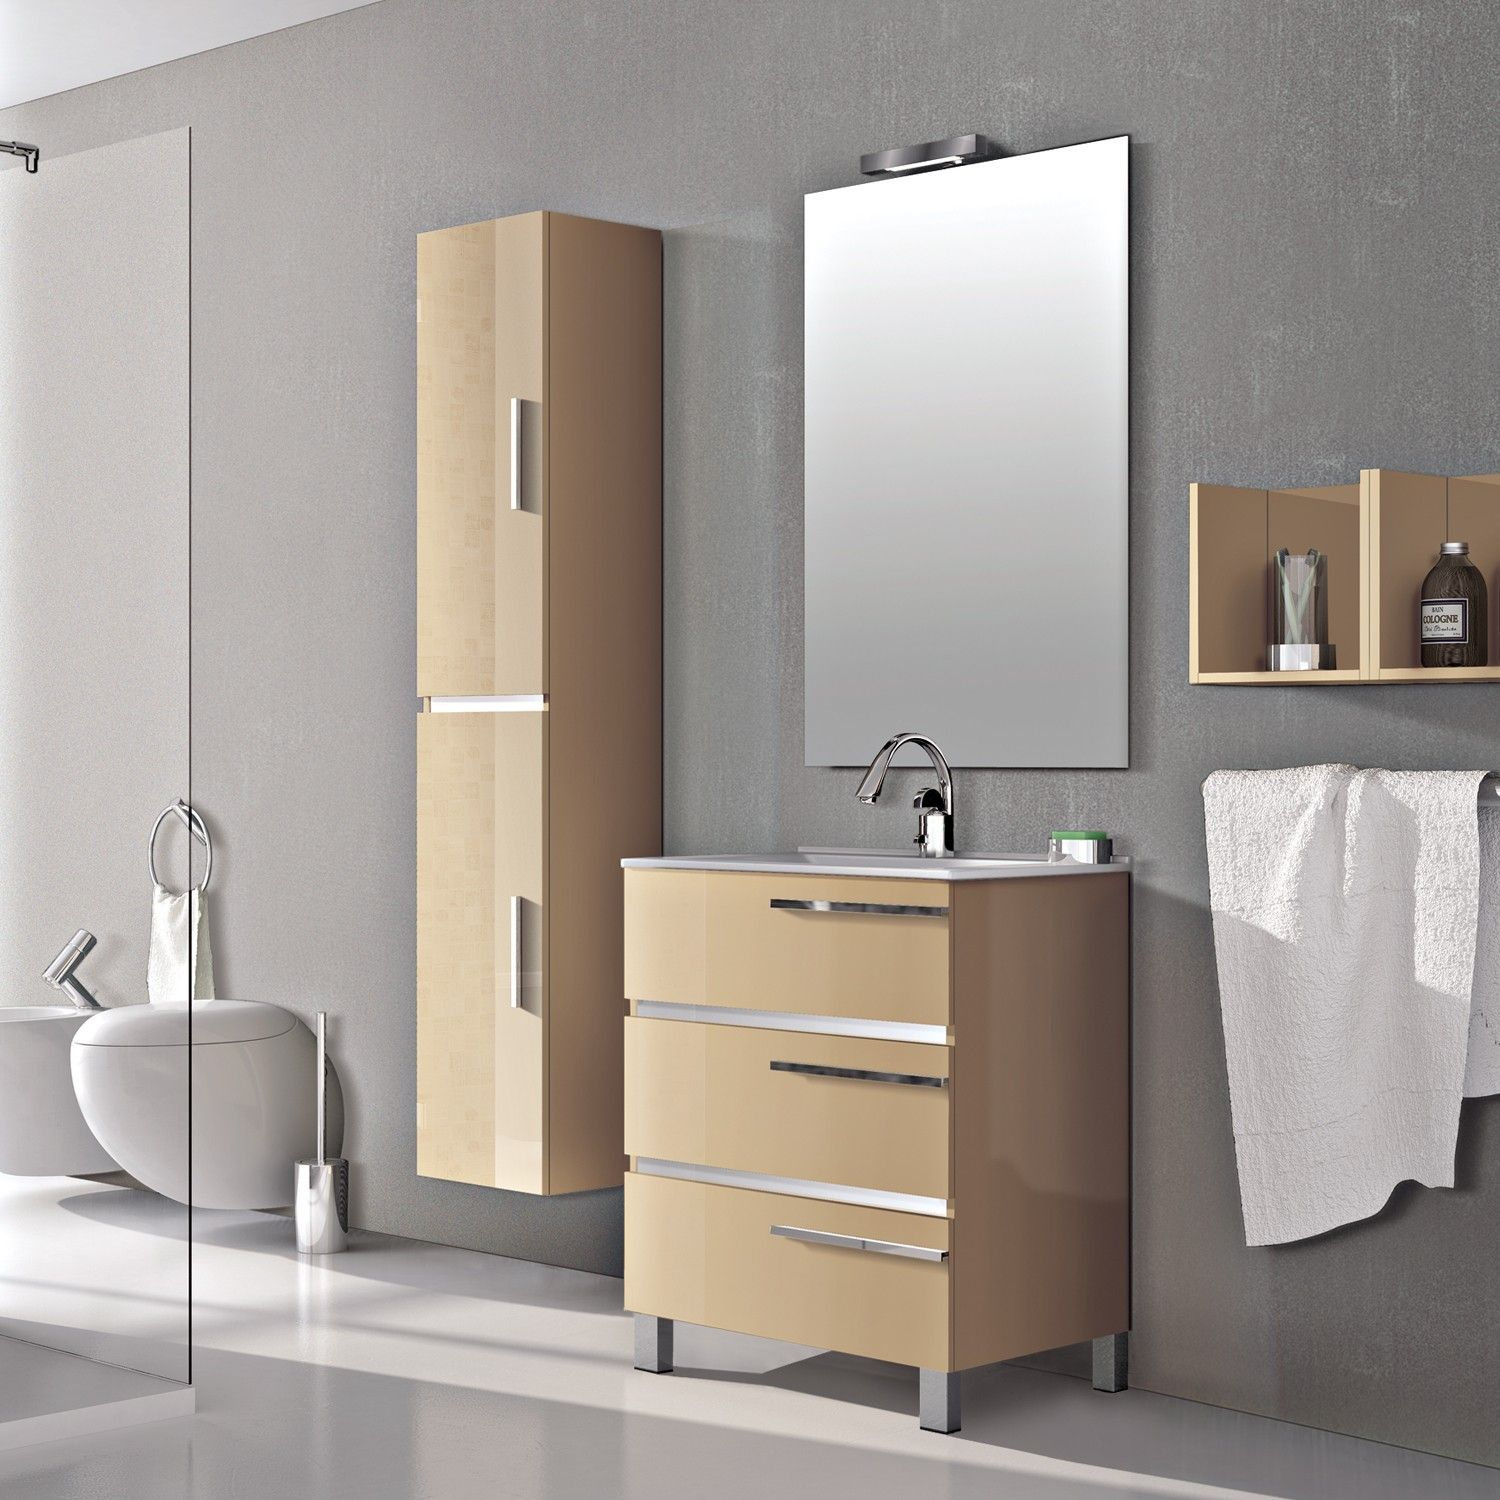 30 Colorful Free Standing Bathroom Cabinets With Images